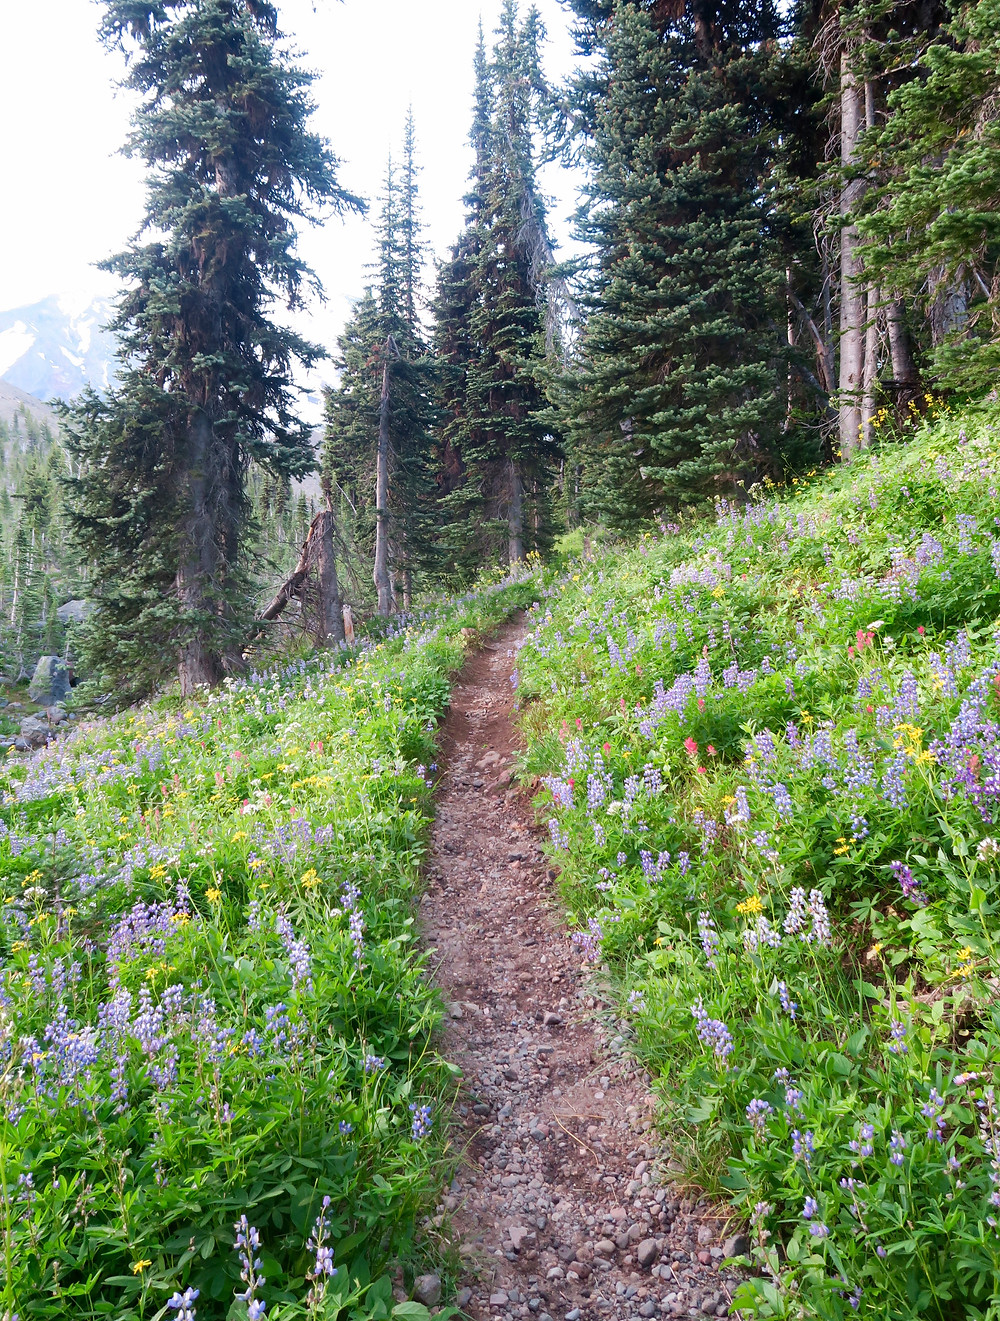 A thin brown trail is surrounded by bright green plants, flowering purple lupine, and yellow and red wildflowers. The trail leads into a coniferous forest.